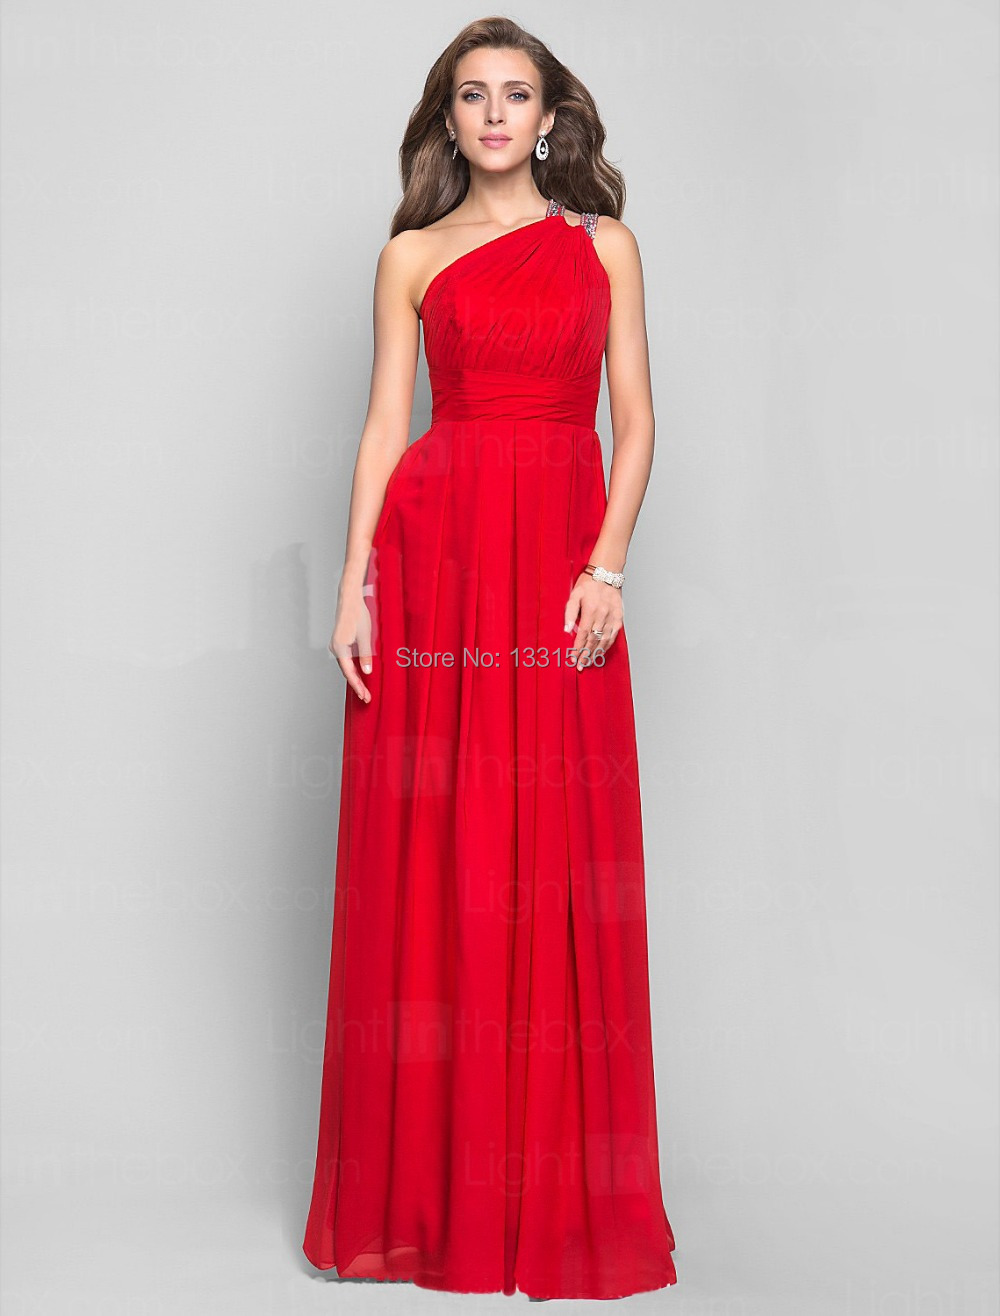 One Shoulder Red Prom Dresses Plus Size 2014 New Red One Shoul...